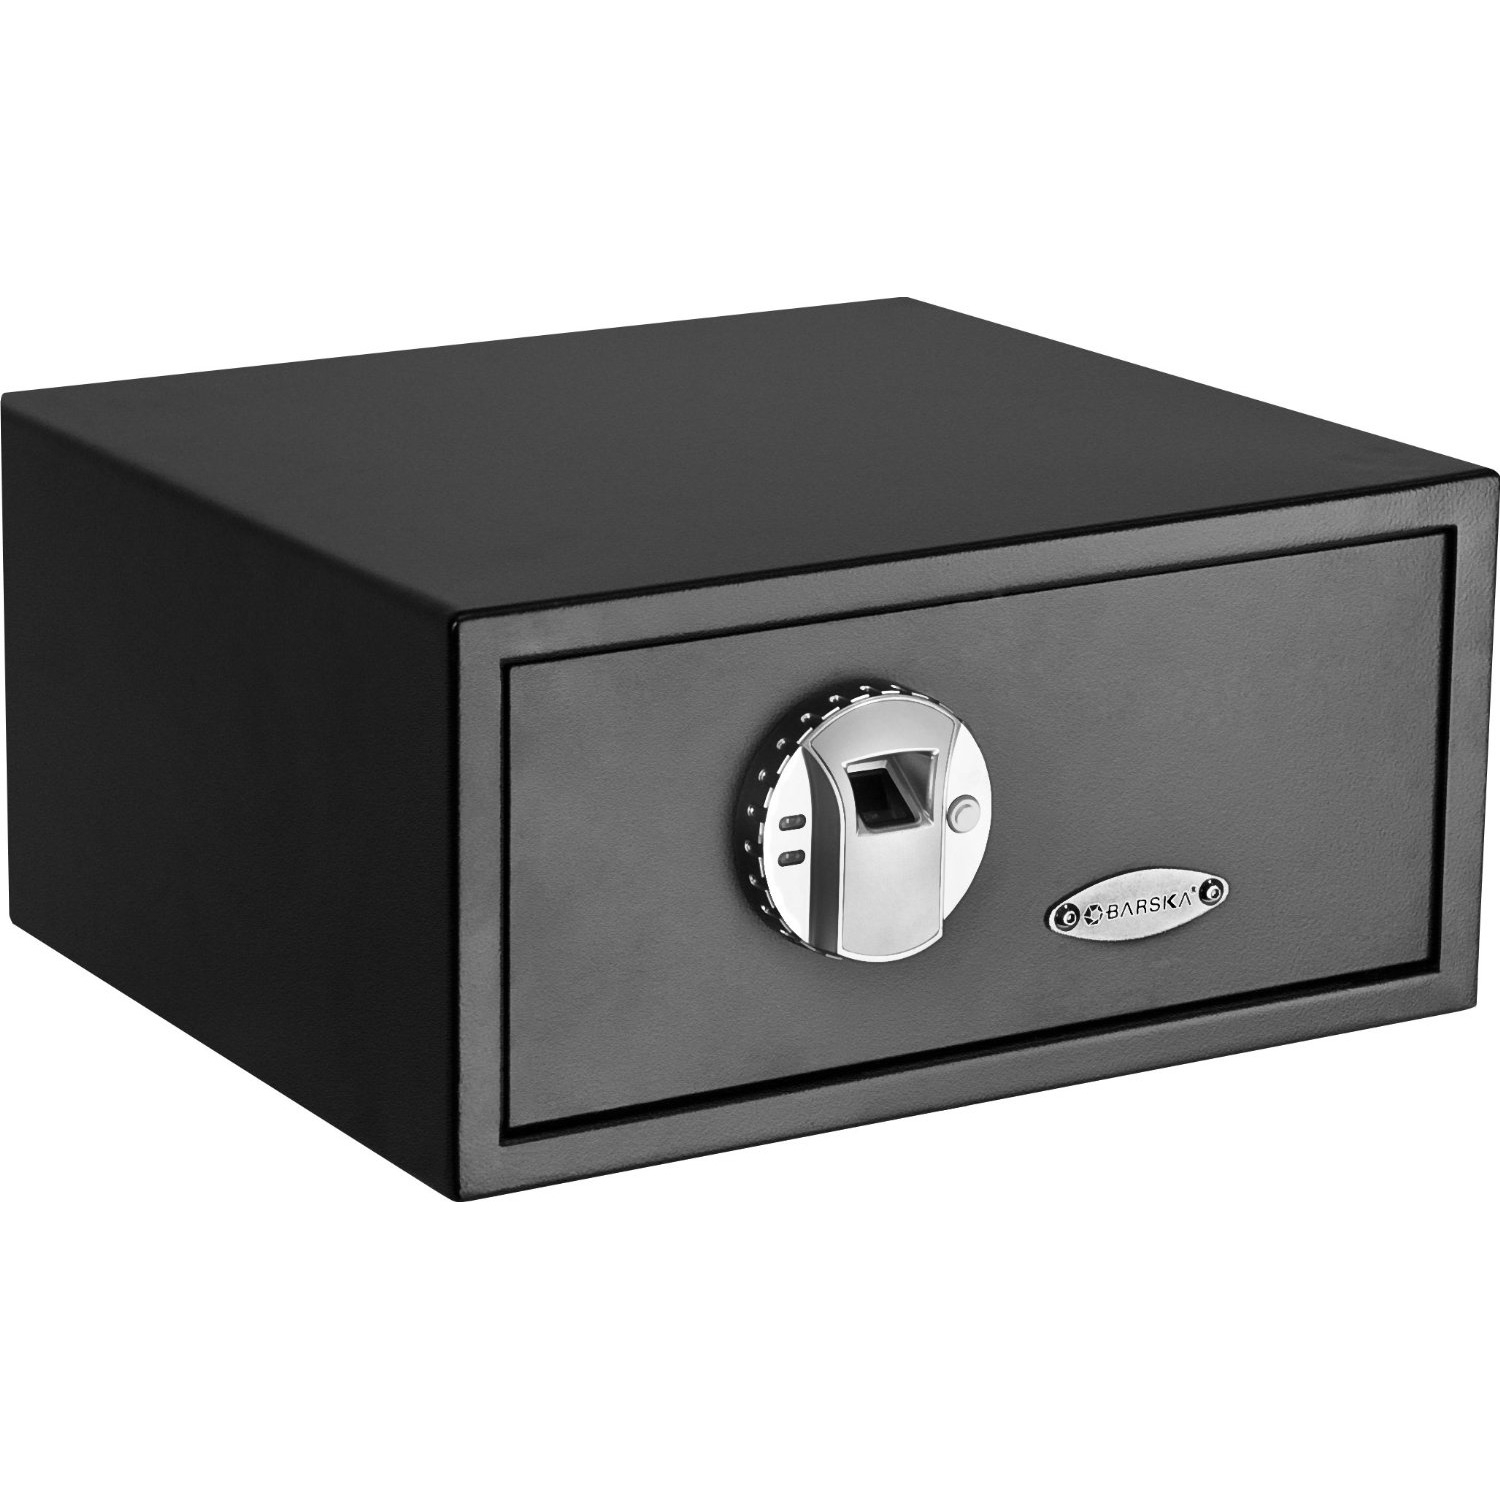 Quick Access Fingerprint Recognition Handgun Safe, BBGS21499 :  Rest assured knowing your valuables are stored securely in this Quick Access Fingerprint Recognition Handgun Safe. Compact, convenient, and state of the art, the safe offers a unique fingerprint pad that recognizes only your fingerprint and others you designate. Fingerprint recognition guarantees you'll never again have to fumble for your keys or remember complicated combinations. Just touch your finger to the pad--which accepts up to 30 fingerprints--and you'll receive instant access to your money, passport, firearms, medicines, jewelry, and other treasured items. In the end, the safe gives you complete control over who can open the interior and retrieve the contents--and more importantly, who can't. Stores important documents, valuables, jewelry, and more; Includes mounting hardware and 2 emergency backup keys.